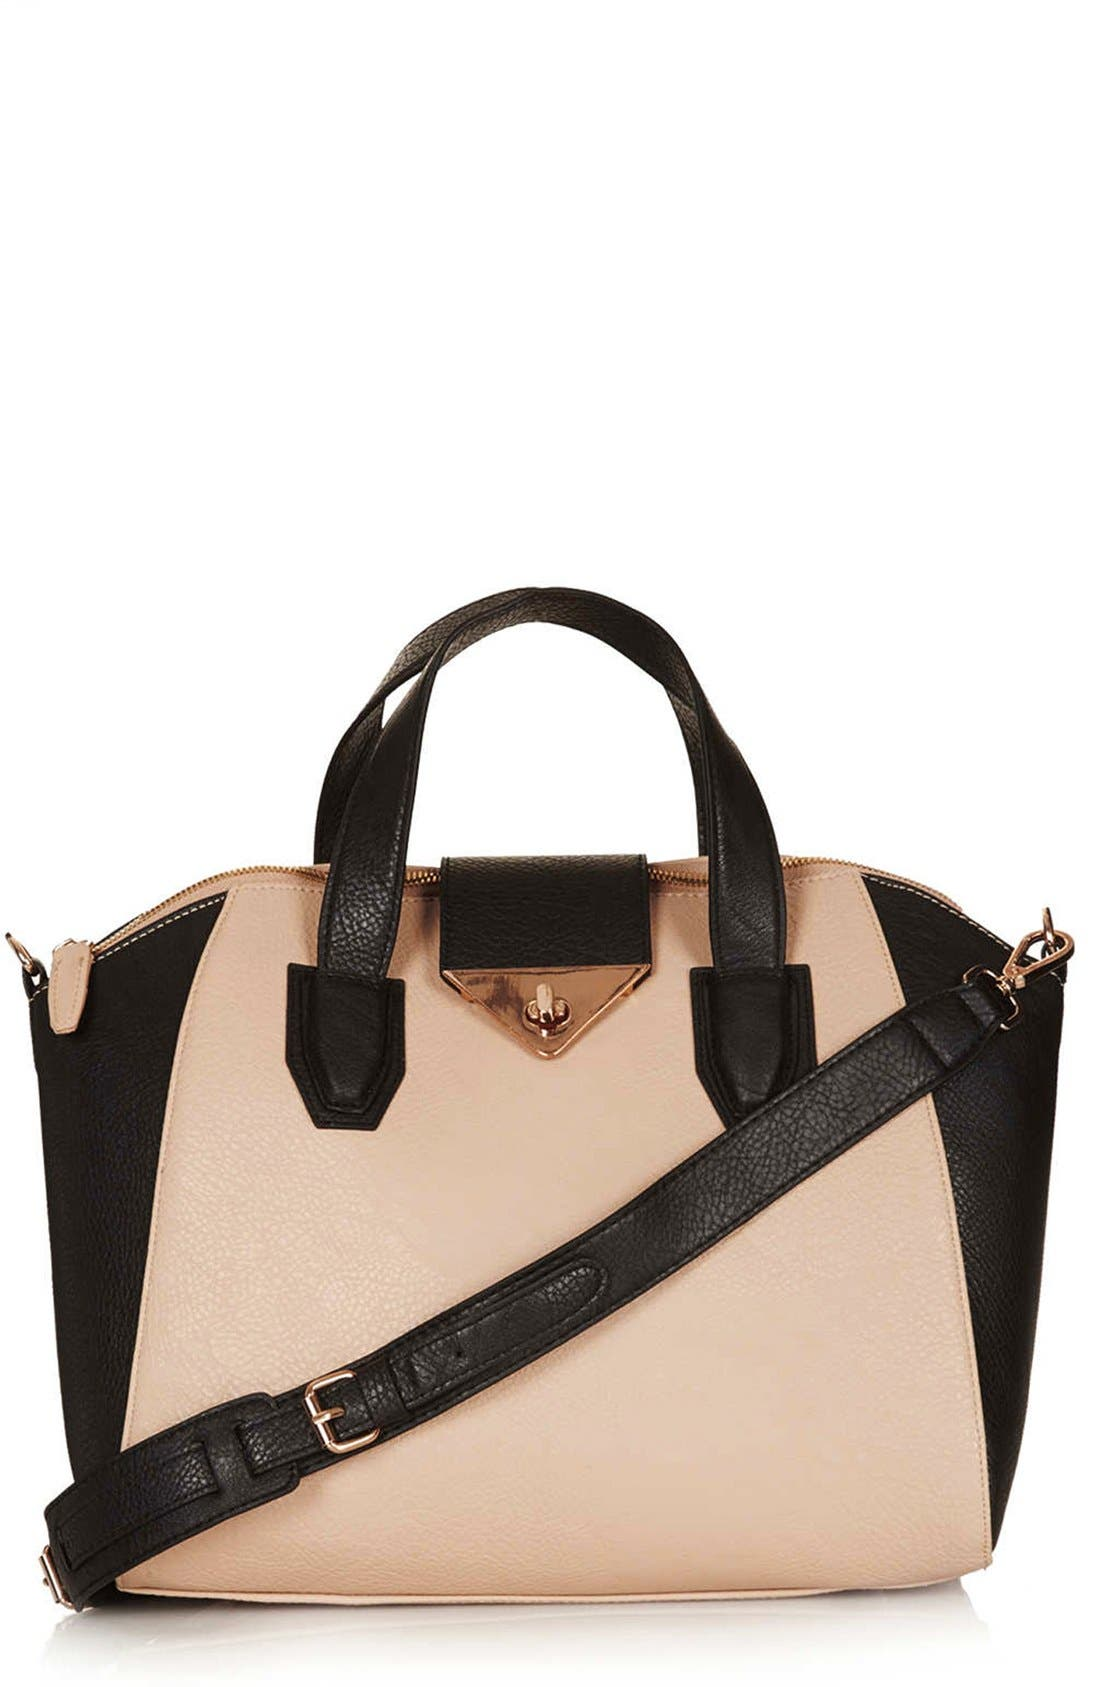 Main Image - Topshop 'Evian' Satchel, Medium